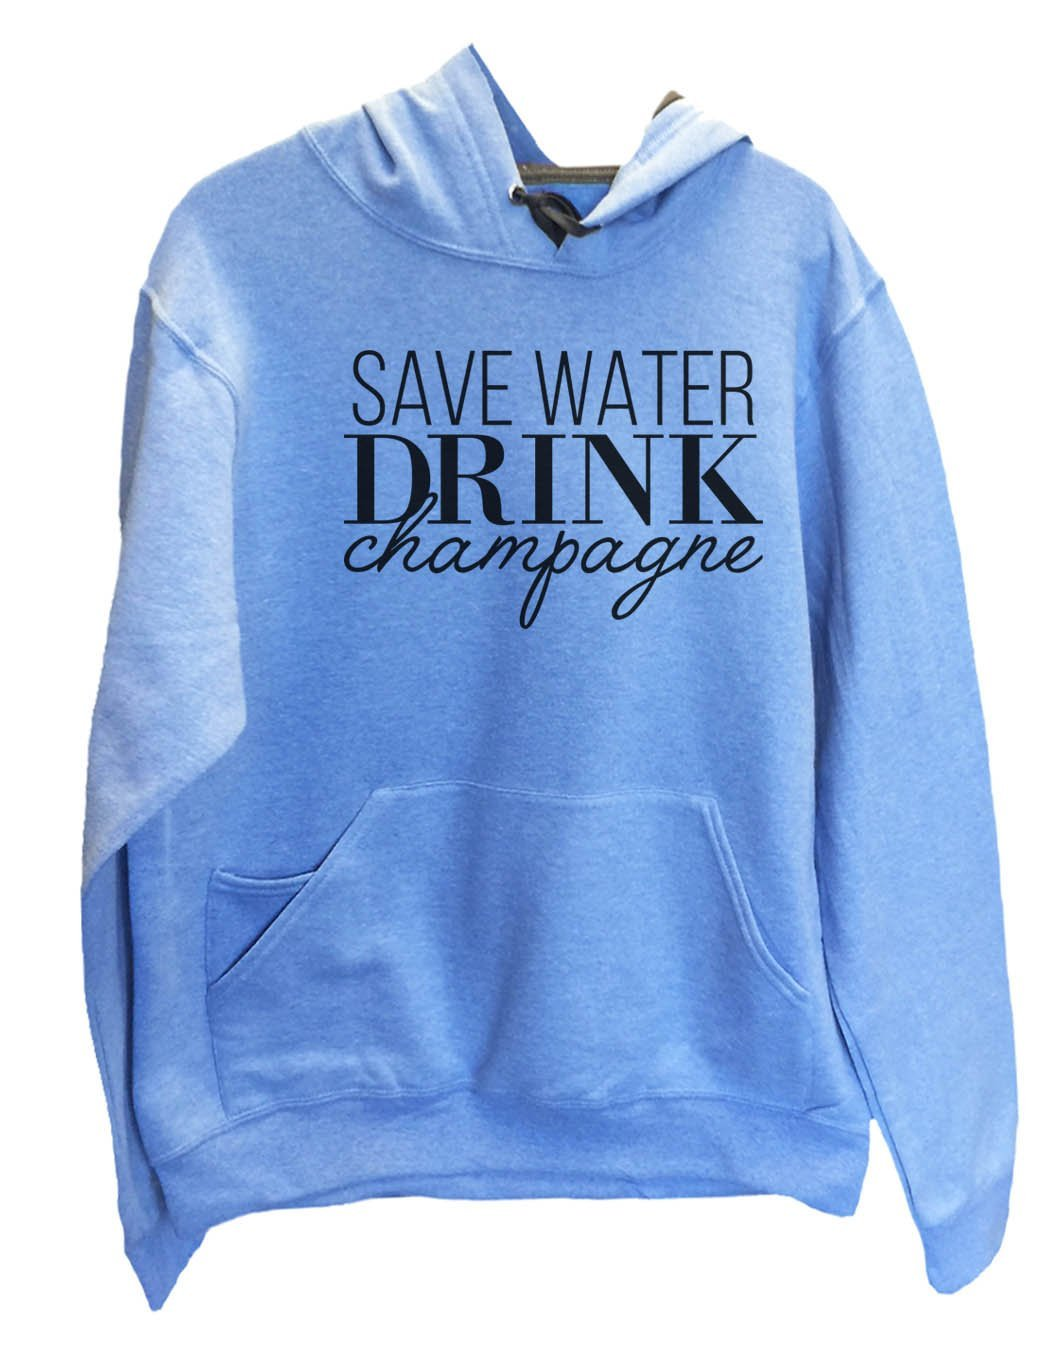 UNISEX HOODIE - Save Water Drink Champagne - FUNNY MENS AND WOMENS HOODED SWEATSHIRTS - 2145 Funny Shirt Small / North Carolina Blue